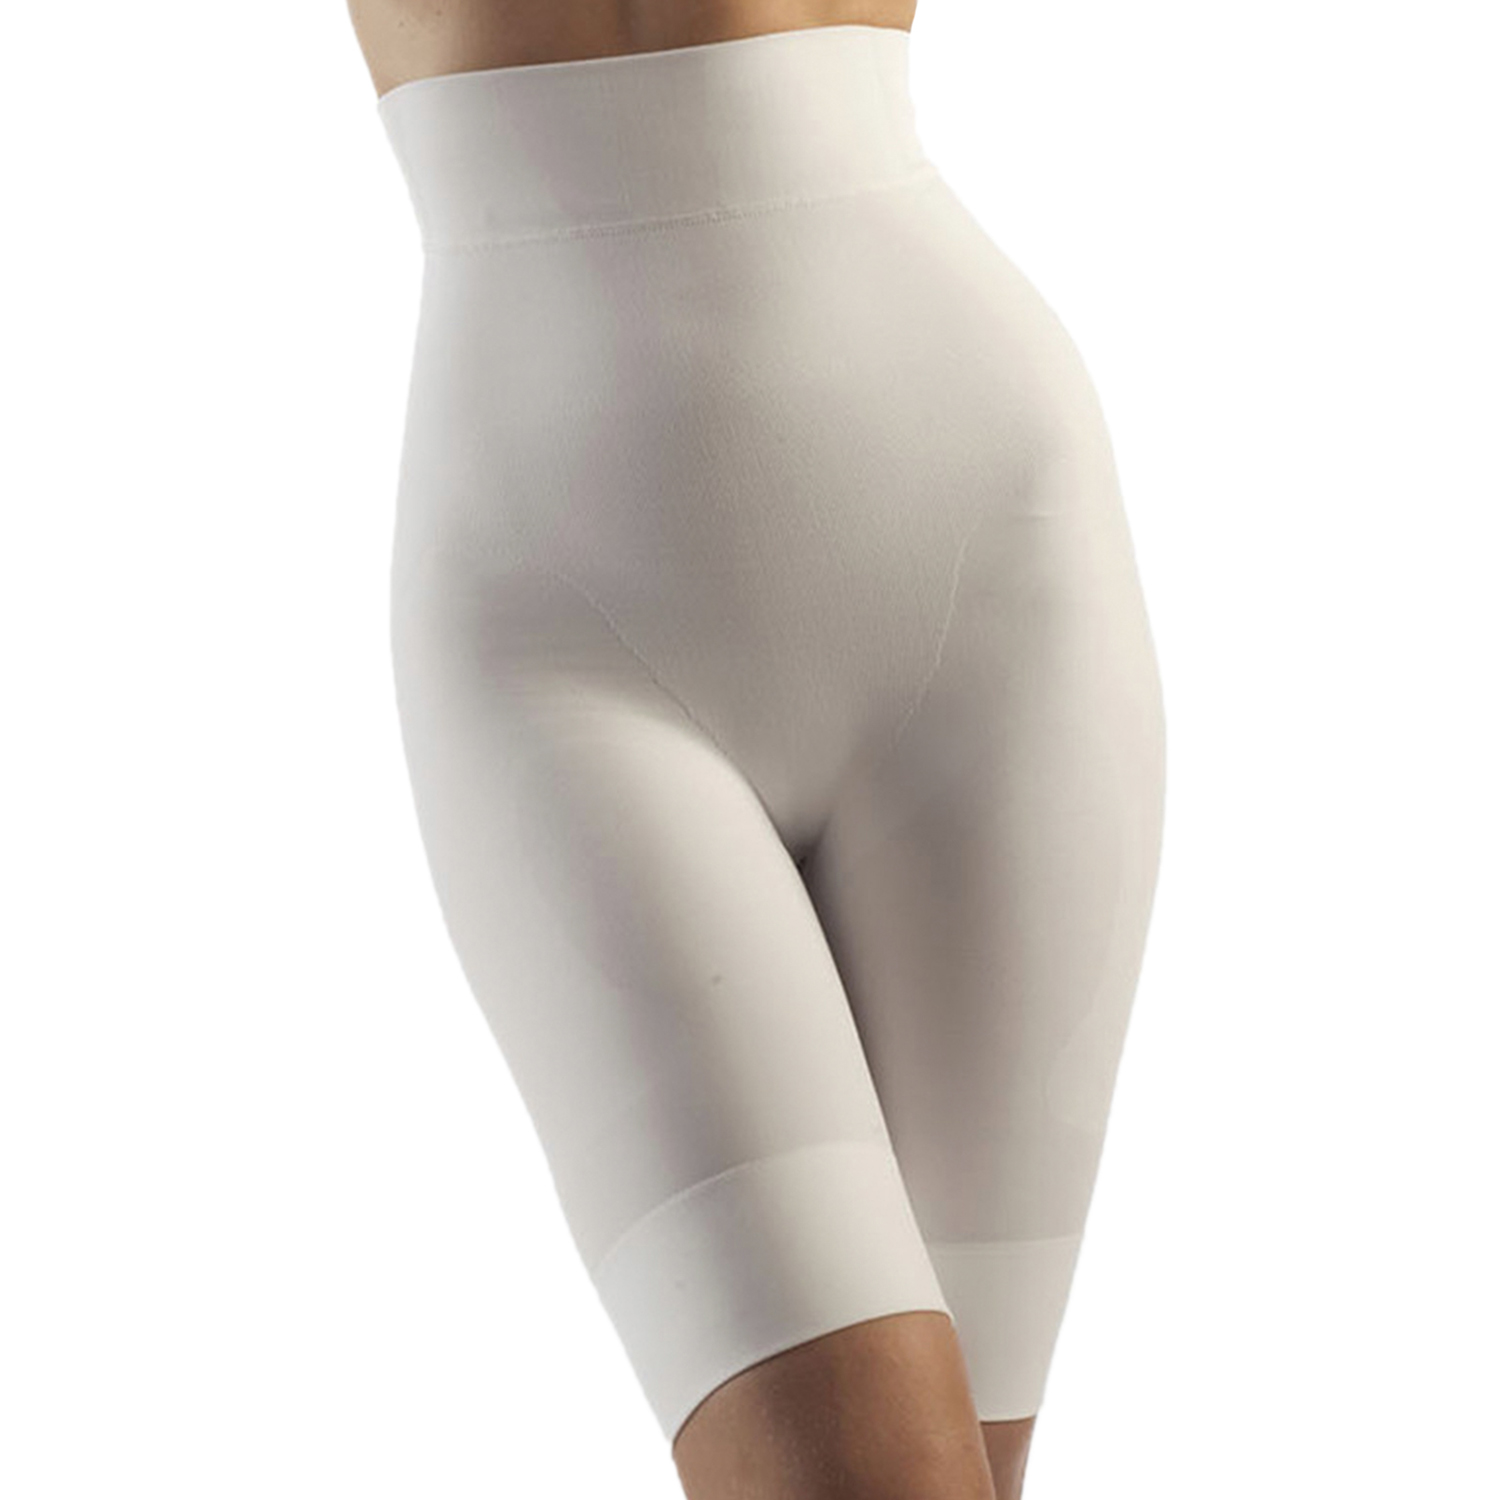 GABRIALLA Style BSM-715 Seamless Milk Fiber Body Shaping High Waist Support Shorts